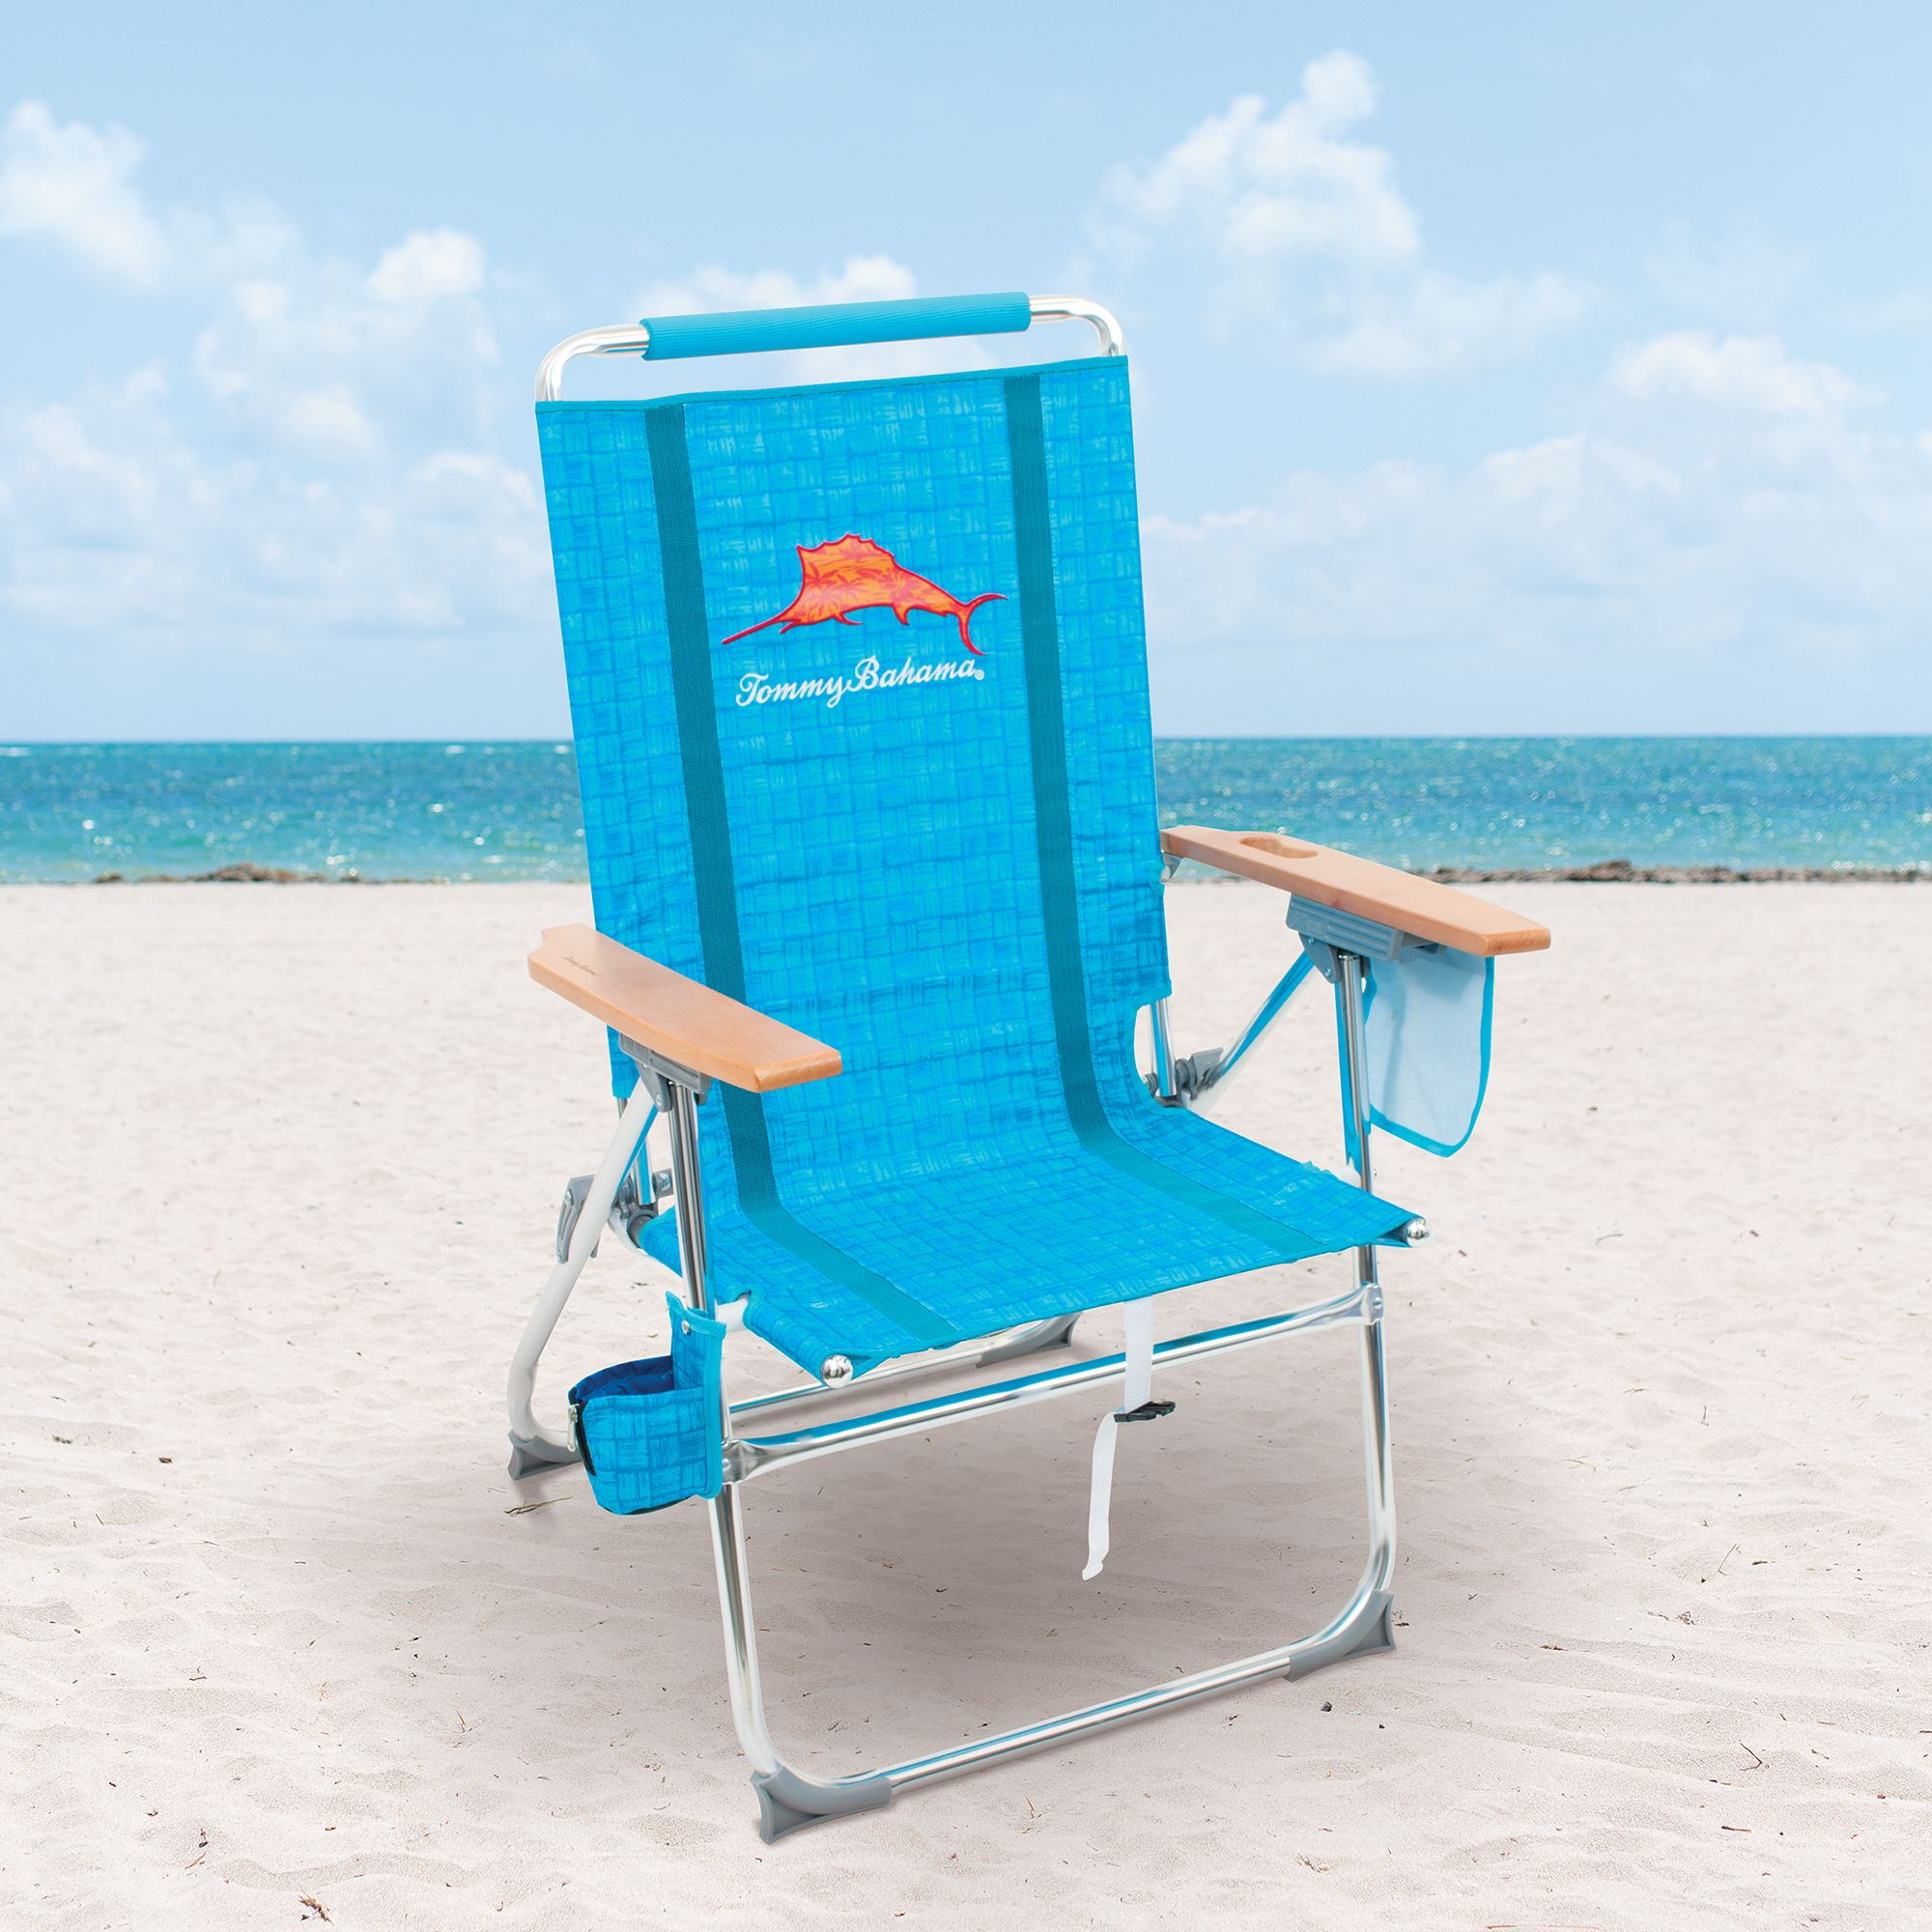 Strange Details About Tommy Bahama Hi Boy Suspension Beach Chair Adjusts To 4 Positions Blue Squirreltailoven Fun Painted Chair Ideas Images Squirreltailovenorg